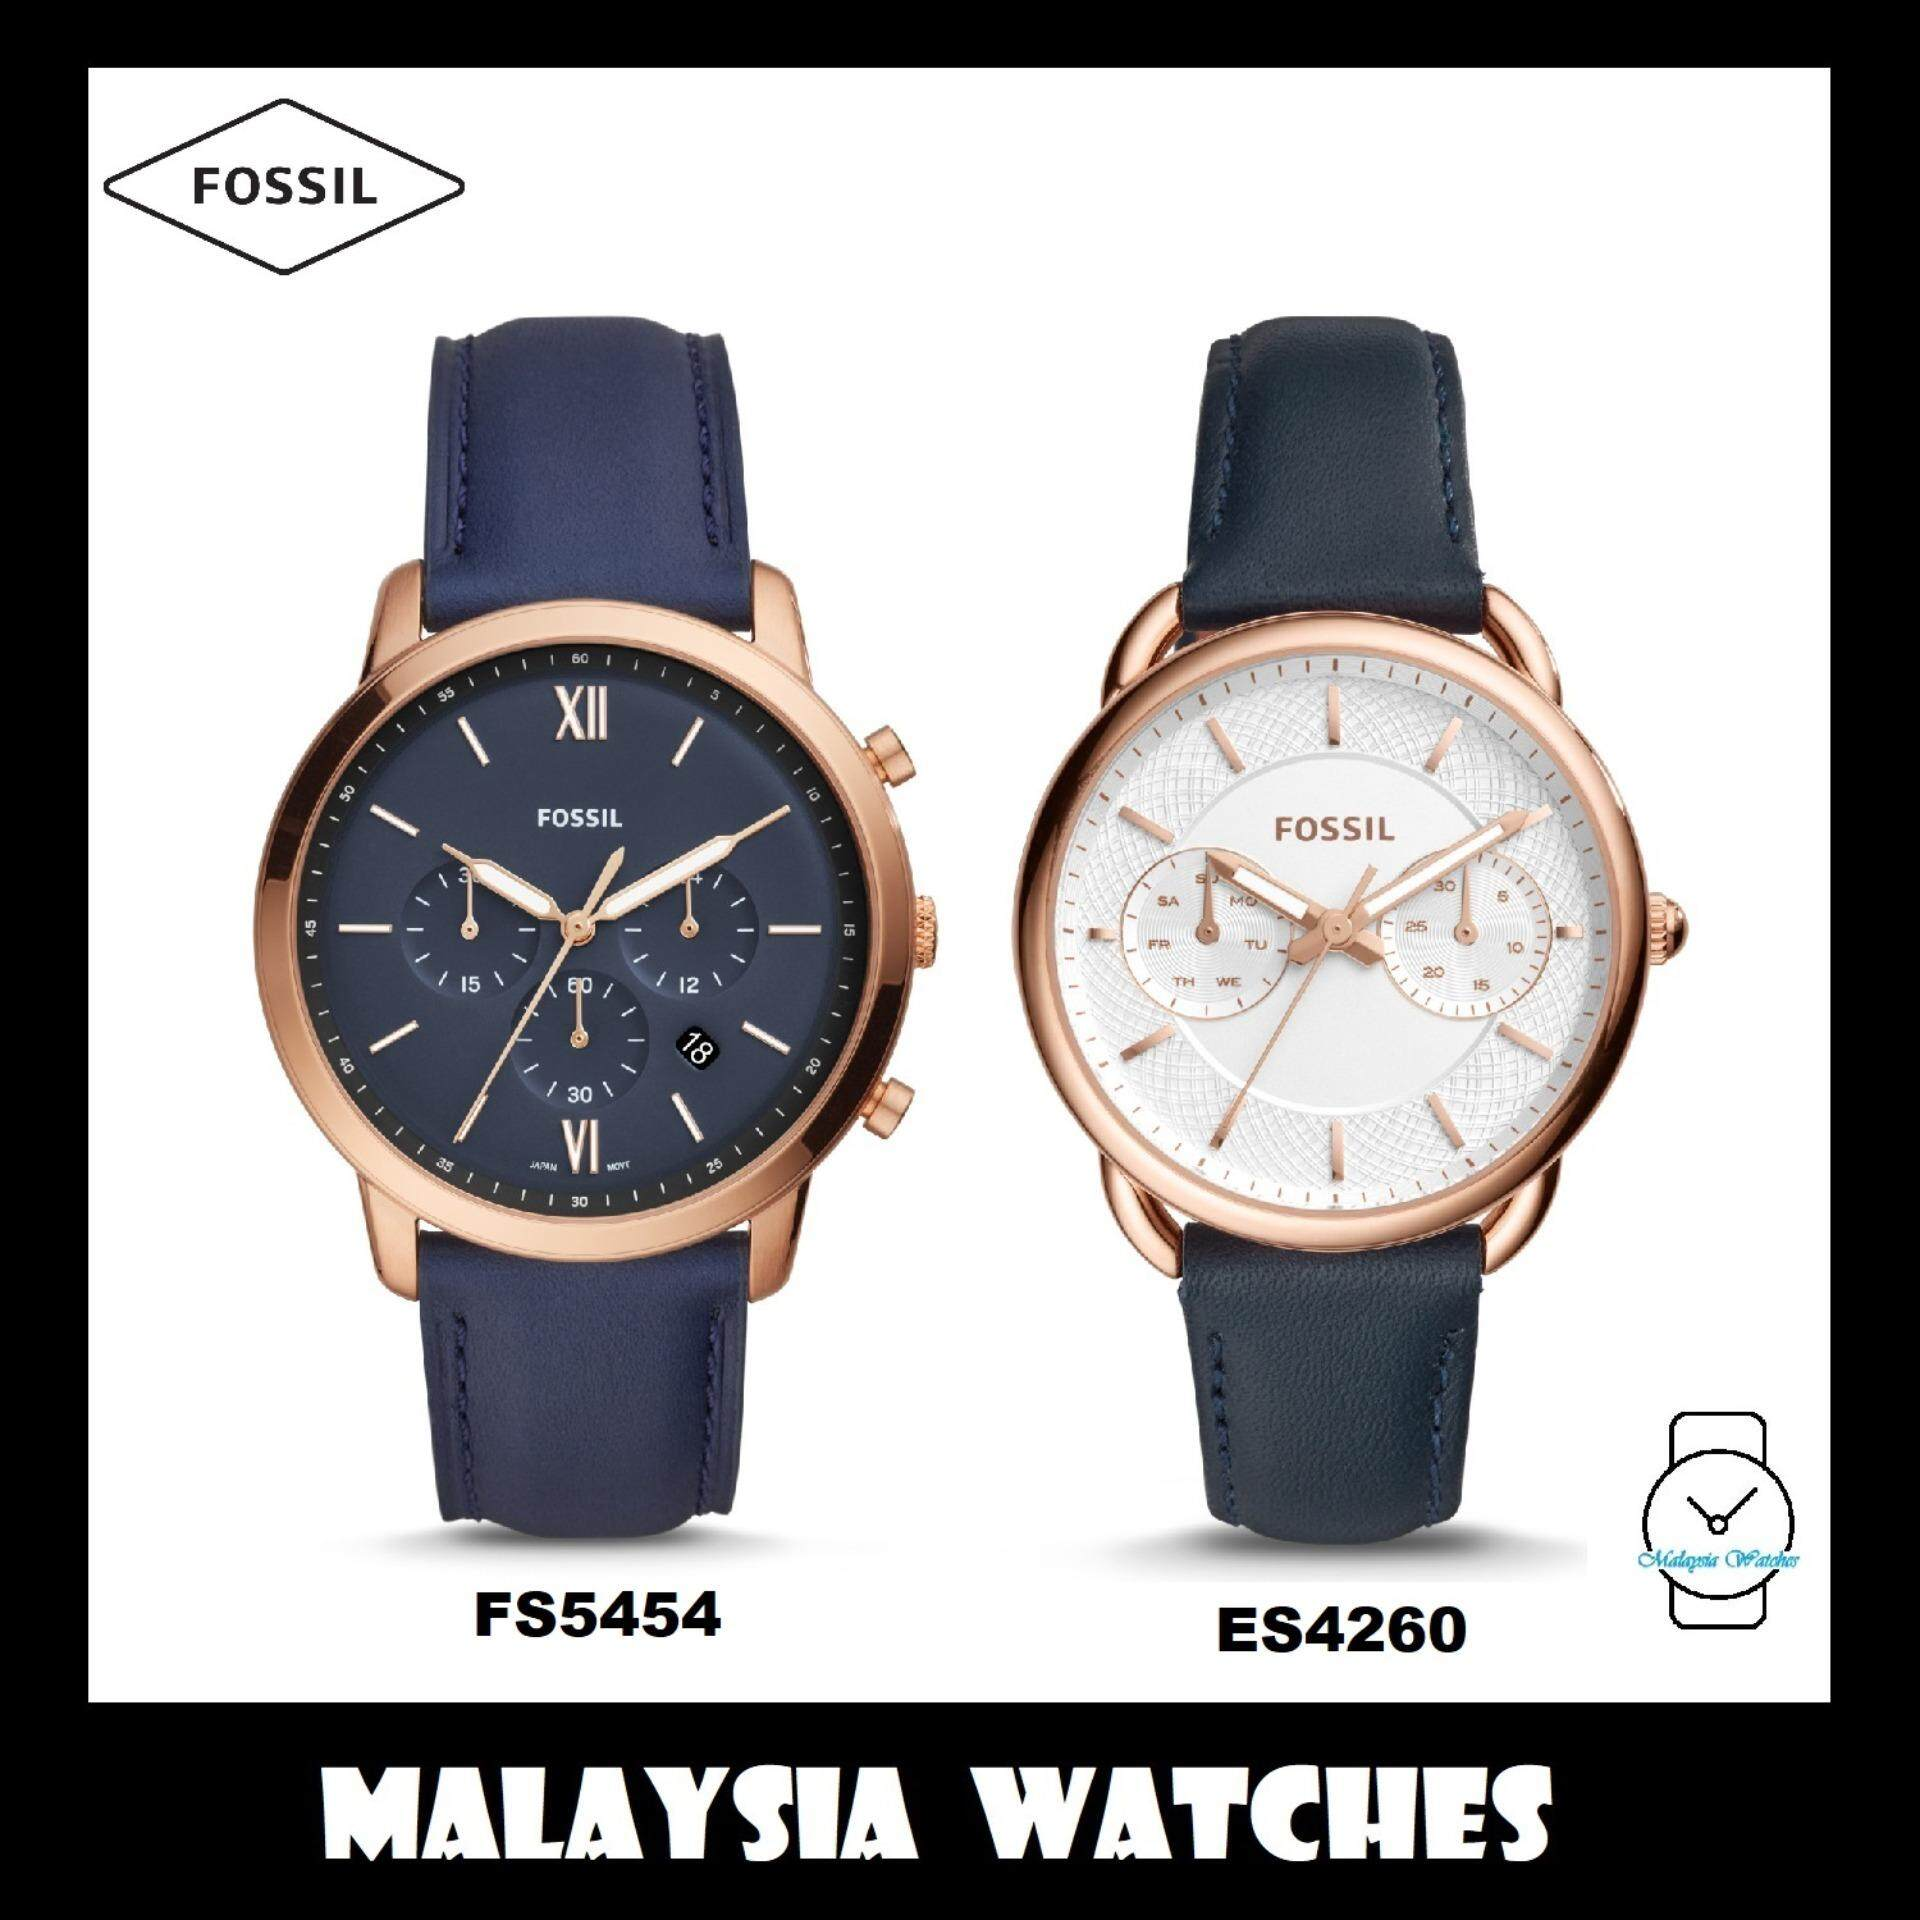 (OFFICIAL WARRANTY) Fossil Mens & Womens FS5454 & ES4260 Navy Leather Watch Combo (100% Original) Malaysia